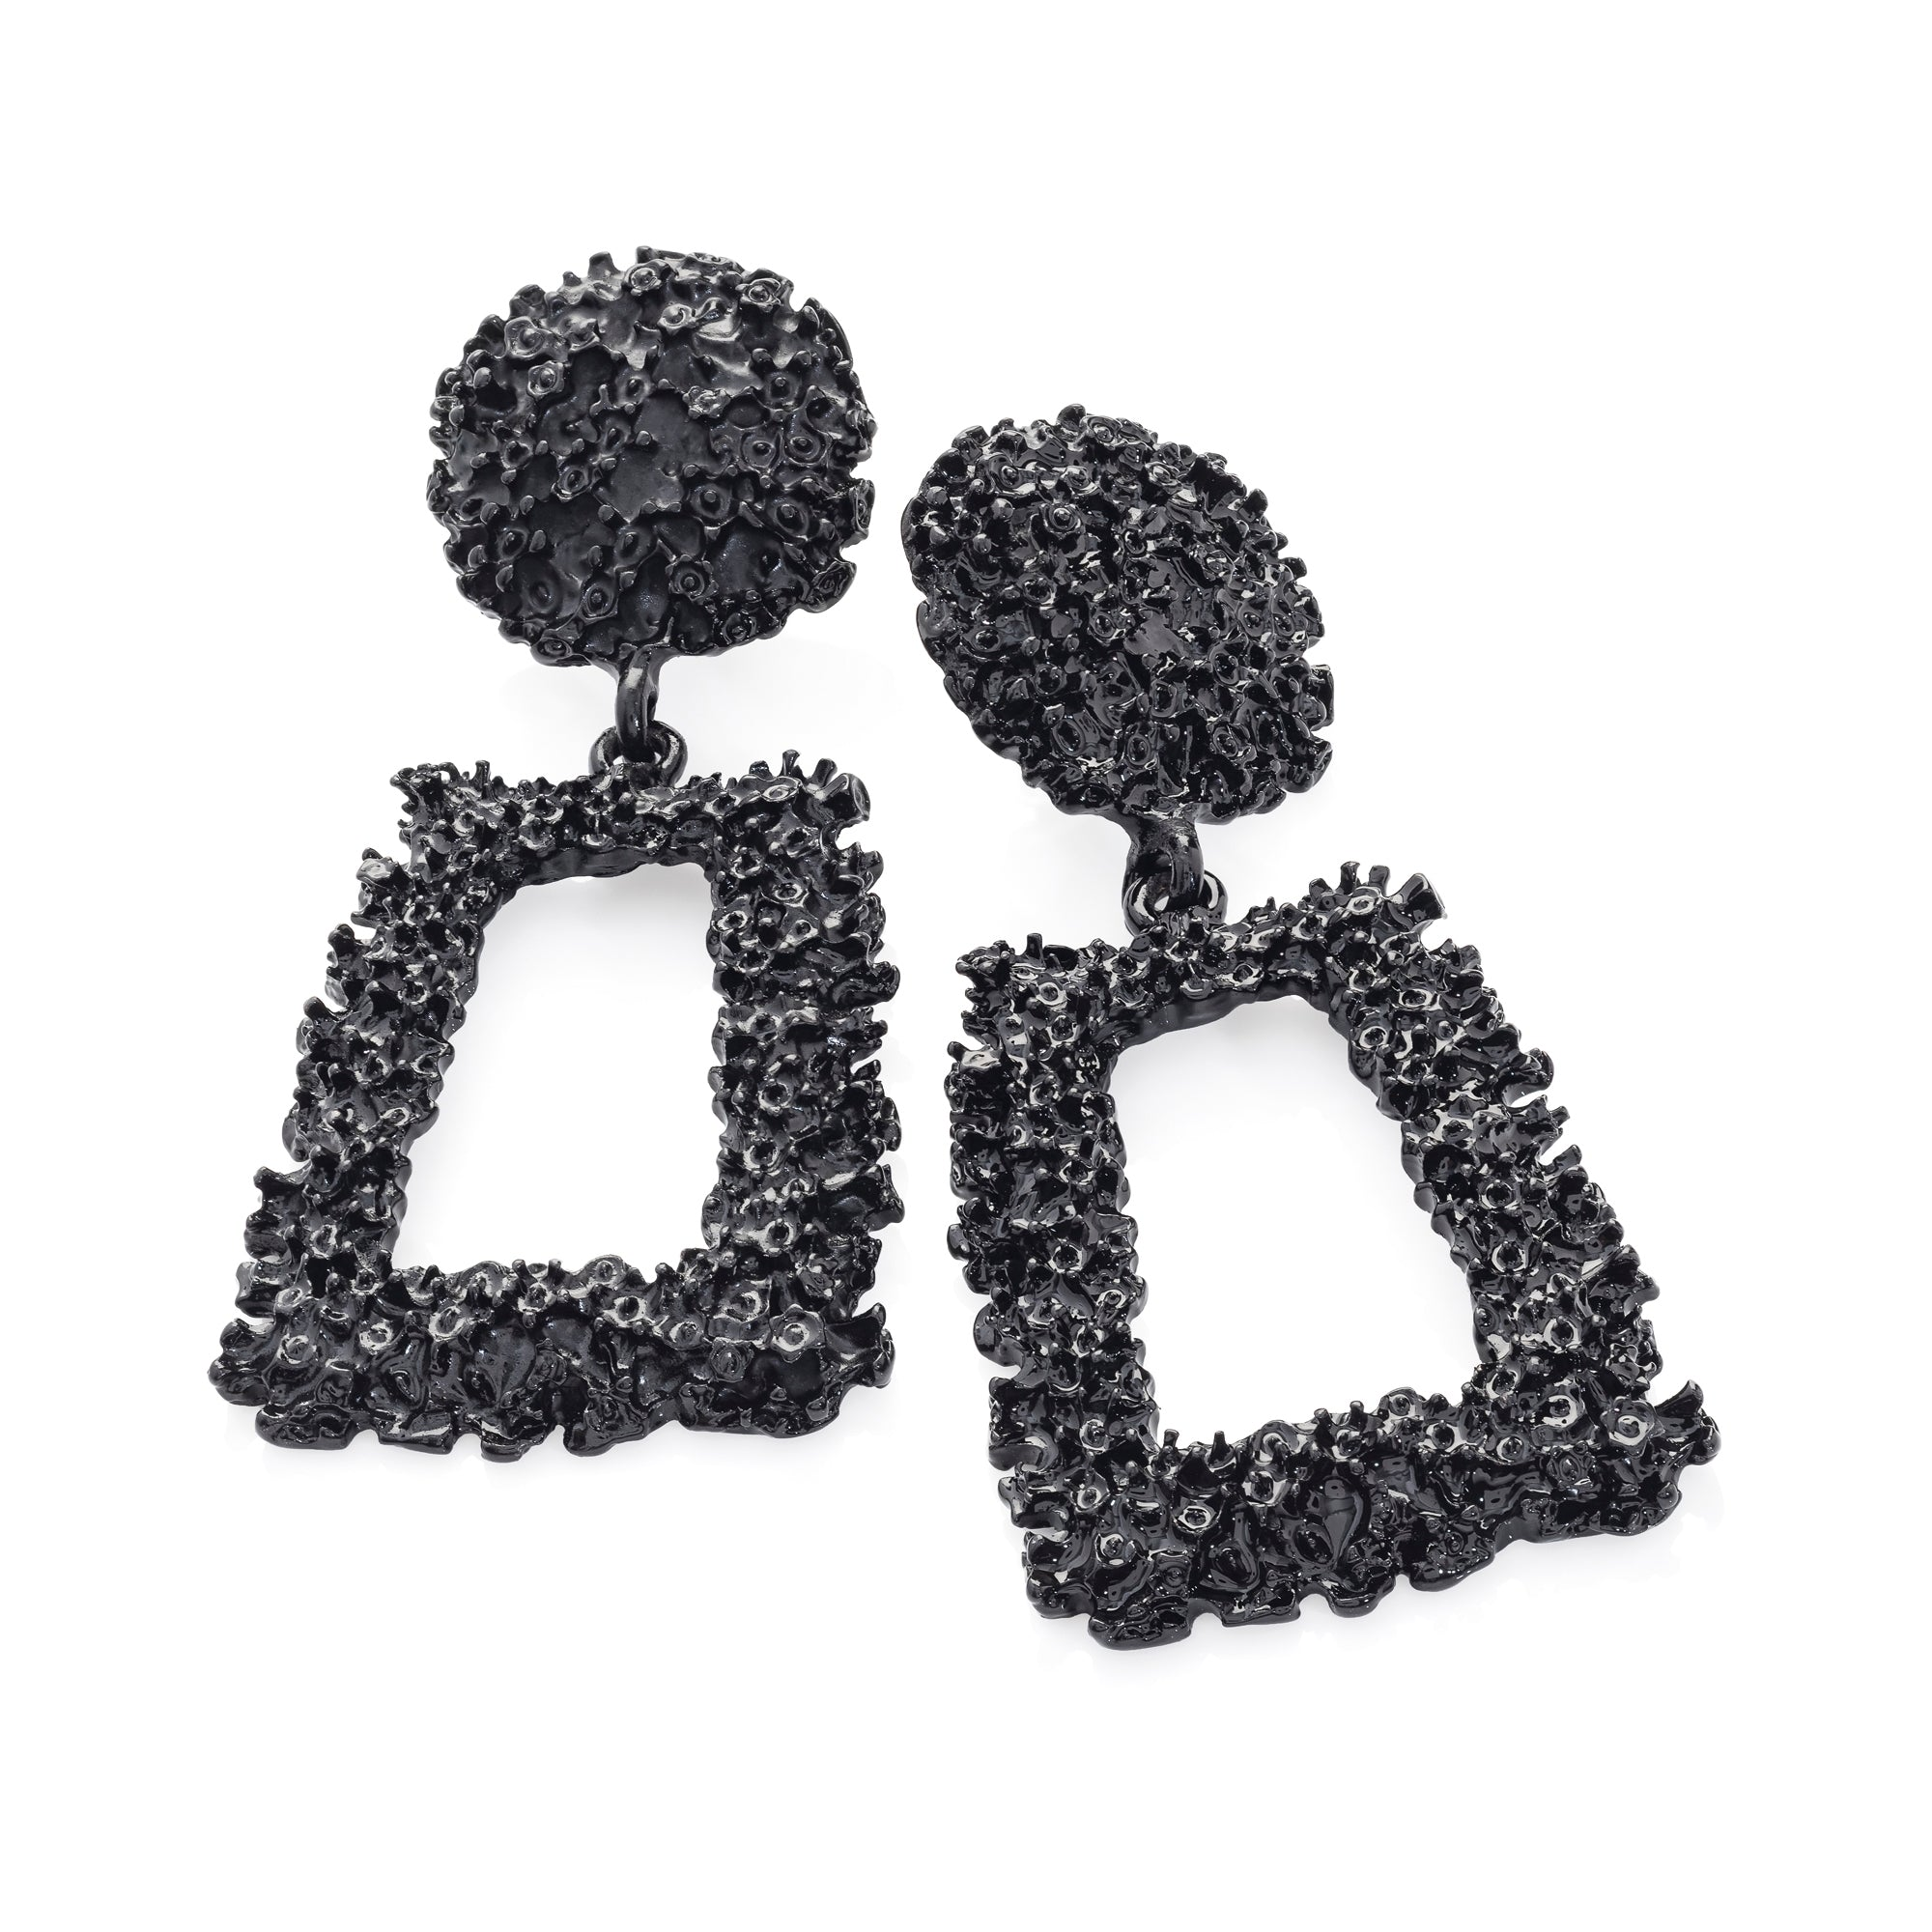 Black Textured Fashion Earrings - Gissings Boutique